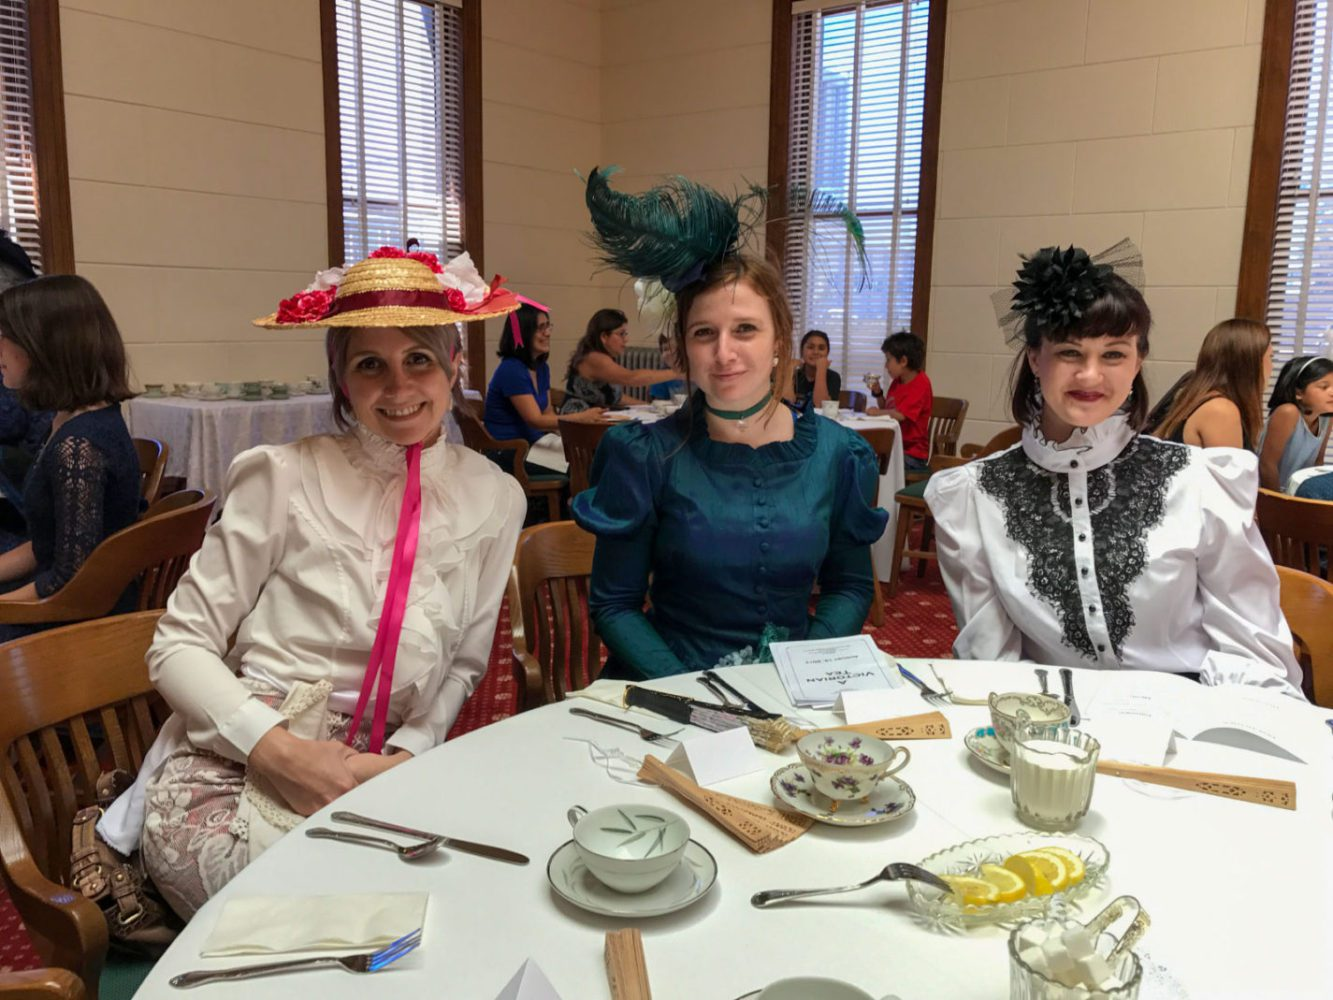 Three women dressed in Victorian dress at San Mateo County History Museum